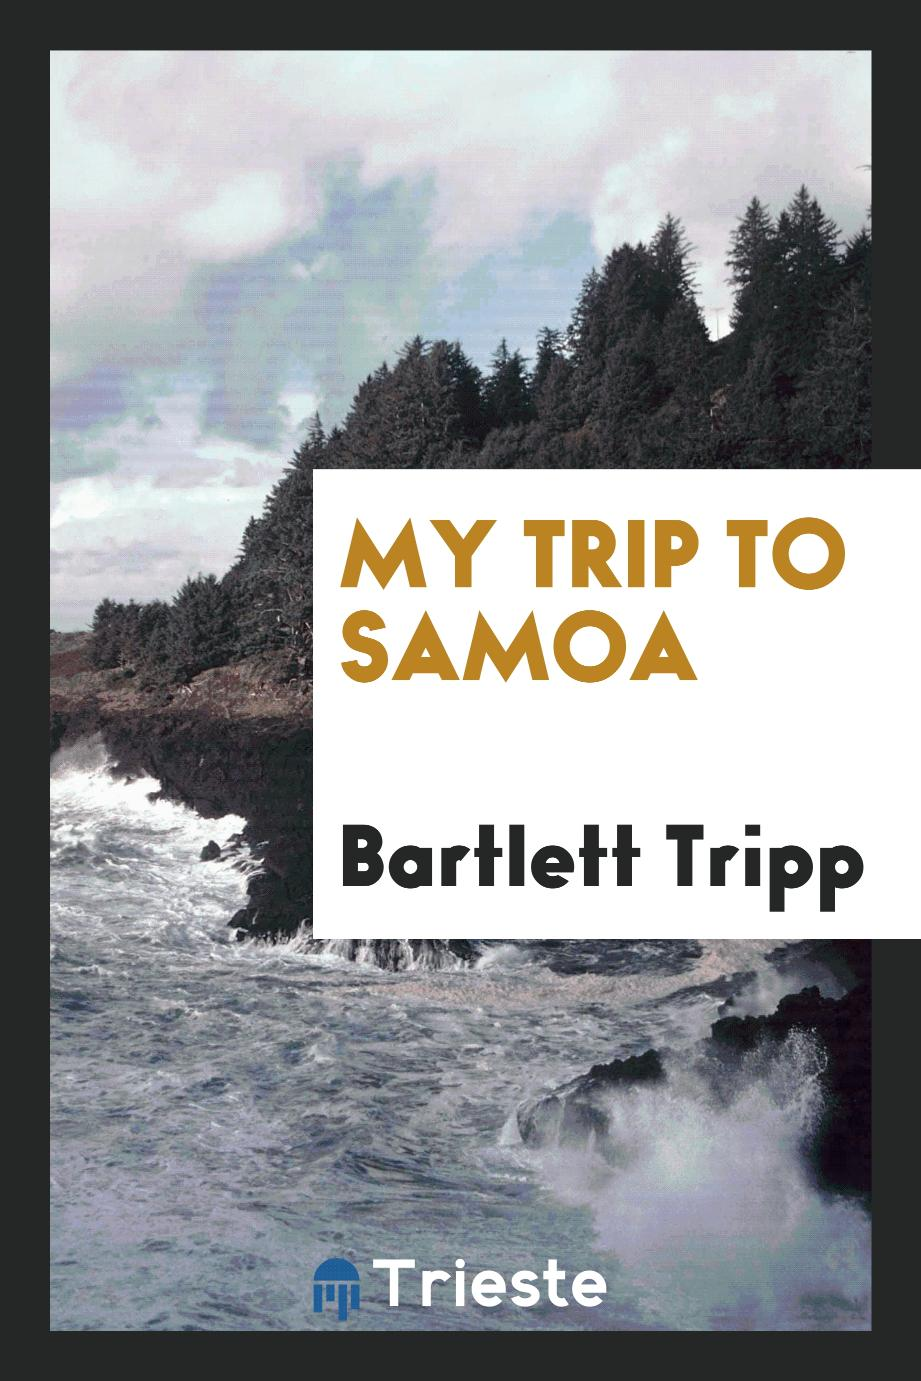 Bartlett Tripp - My trip to Samoa